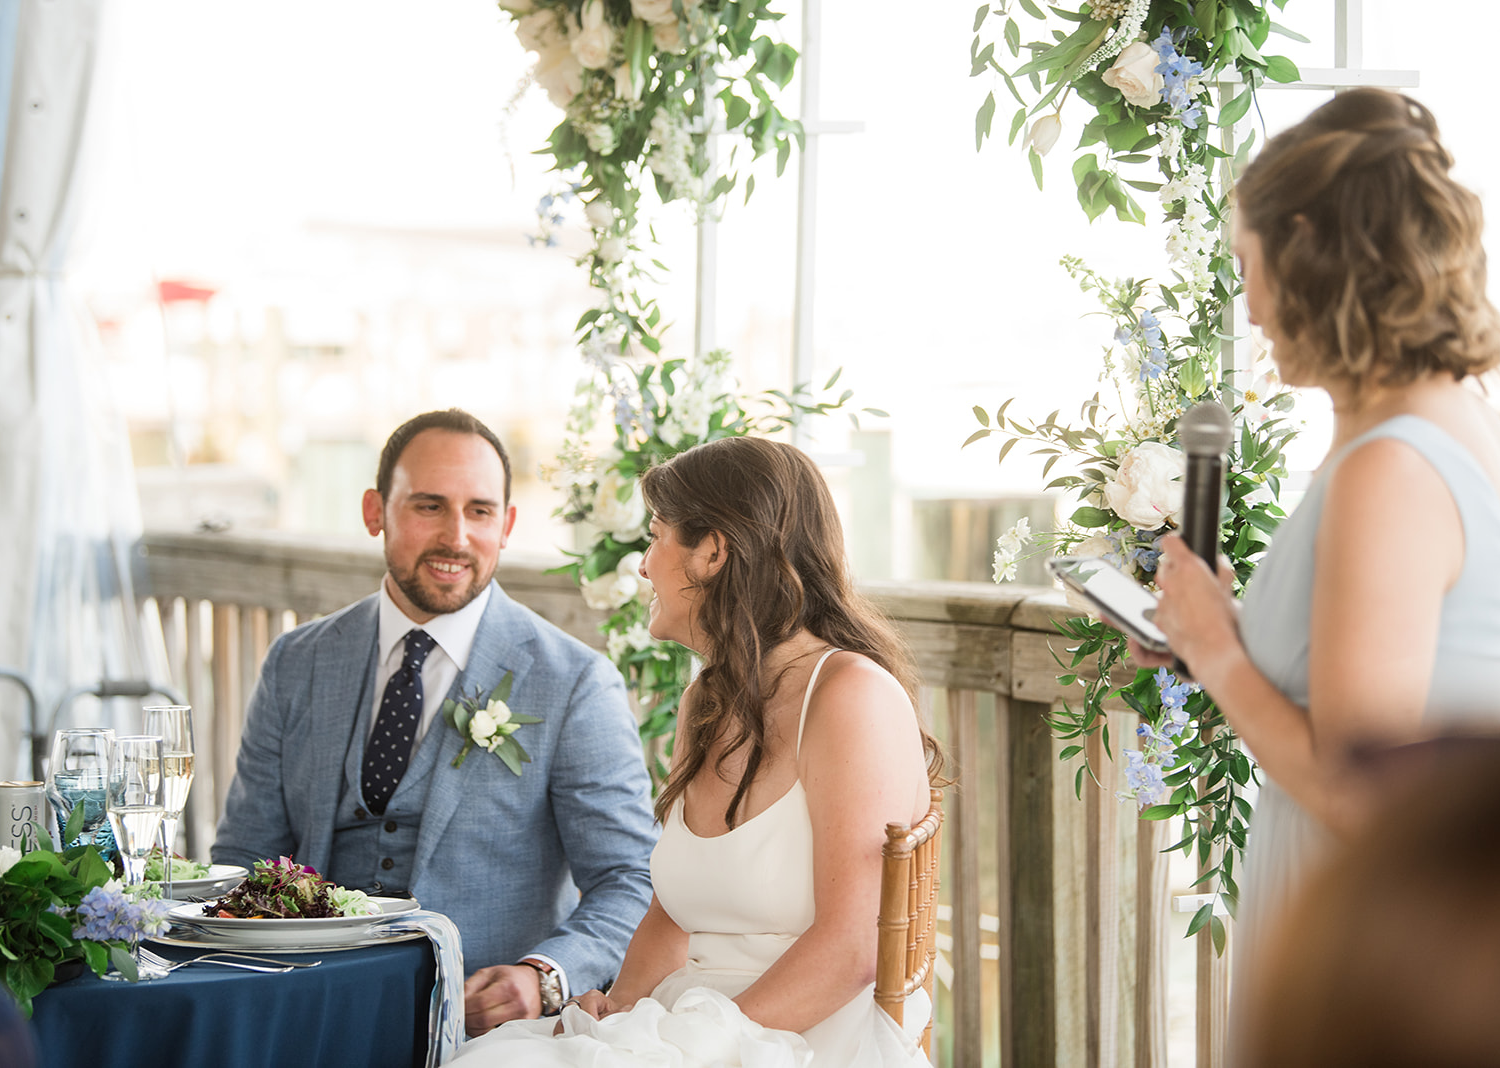 bride and groom smile at eachother as they hear the bridesmaid wedding speech